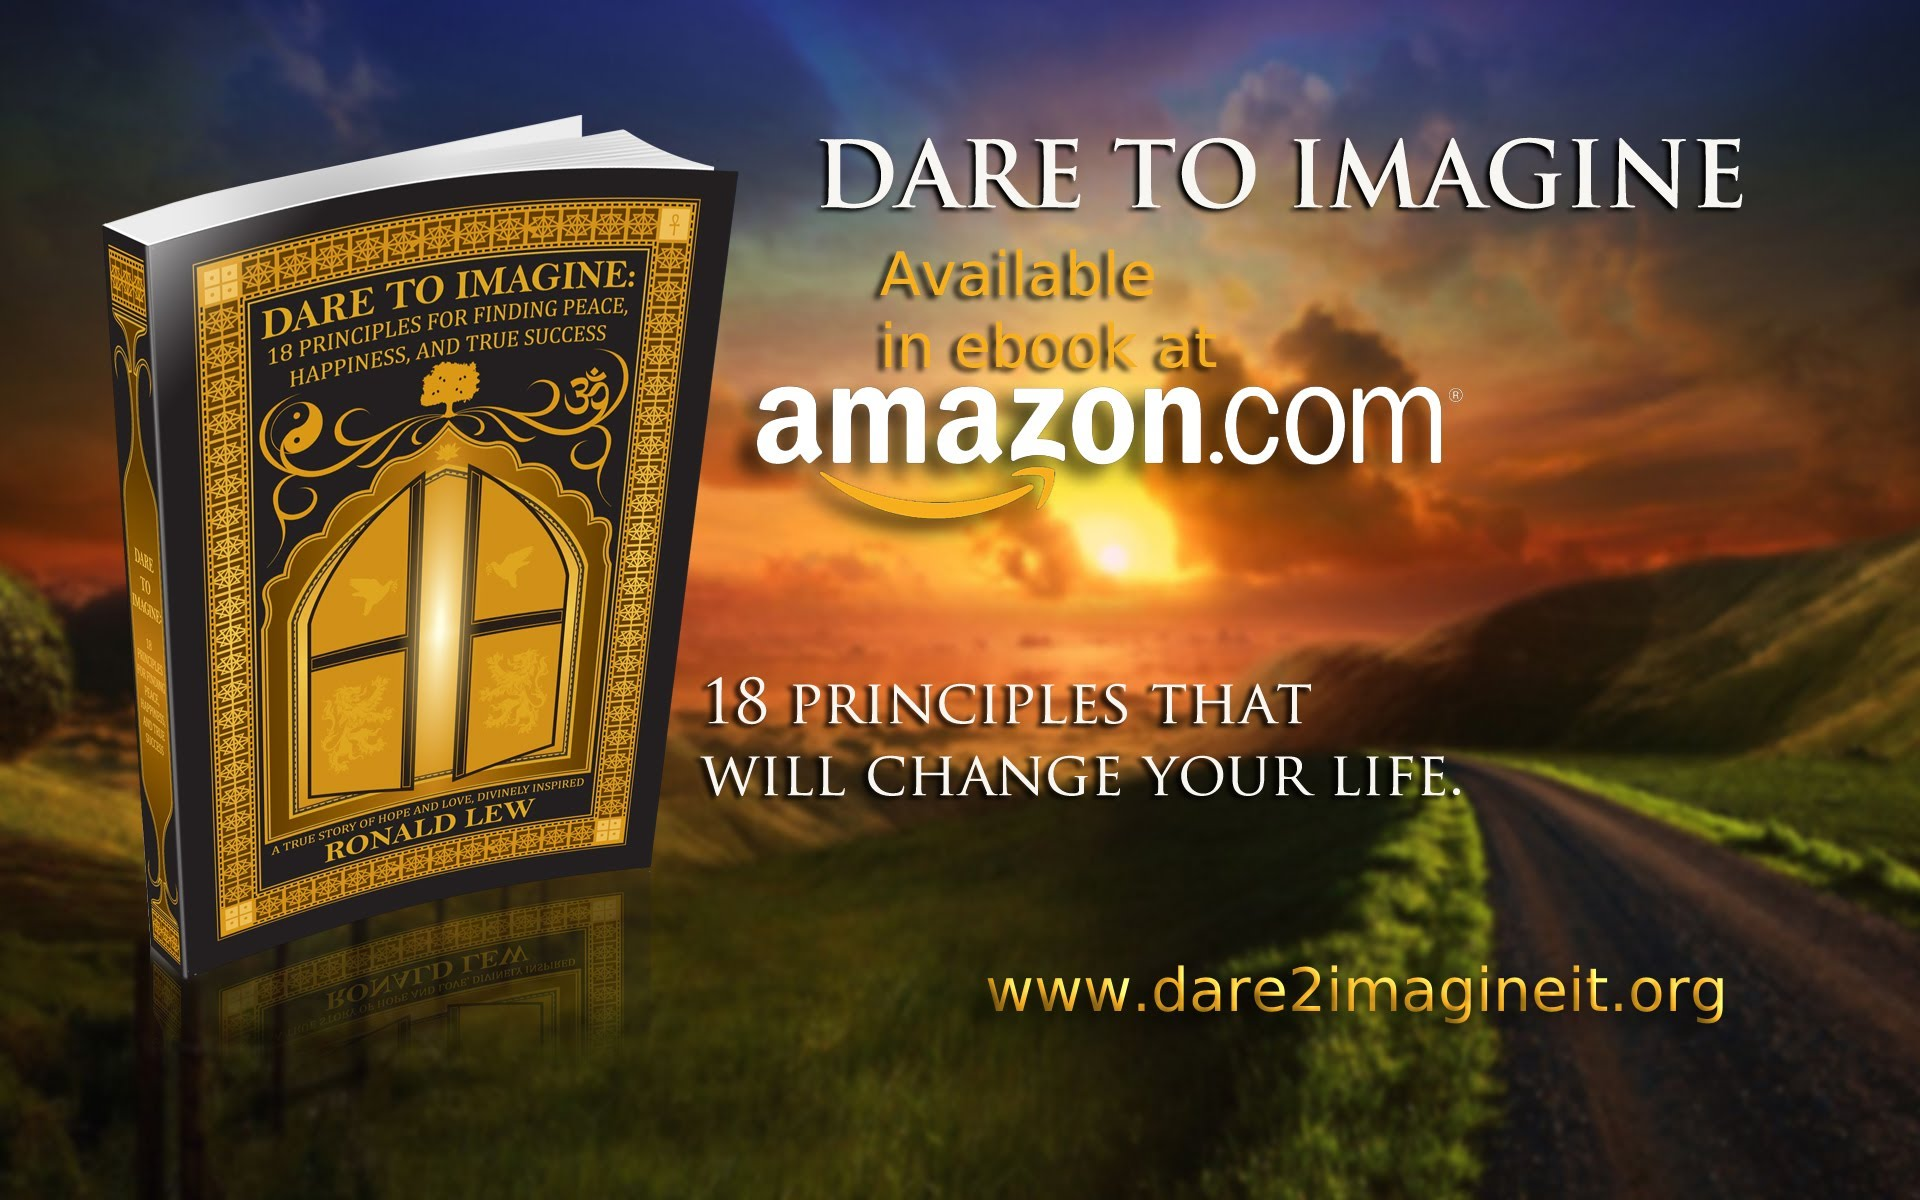 Dare To Imagine Continues To Make Its Way To People From All Walks Of Life  So Far Purchases Continue To Be Steady In The Bay Area